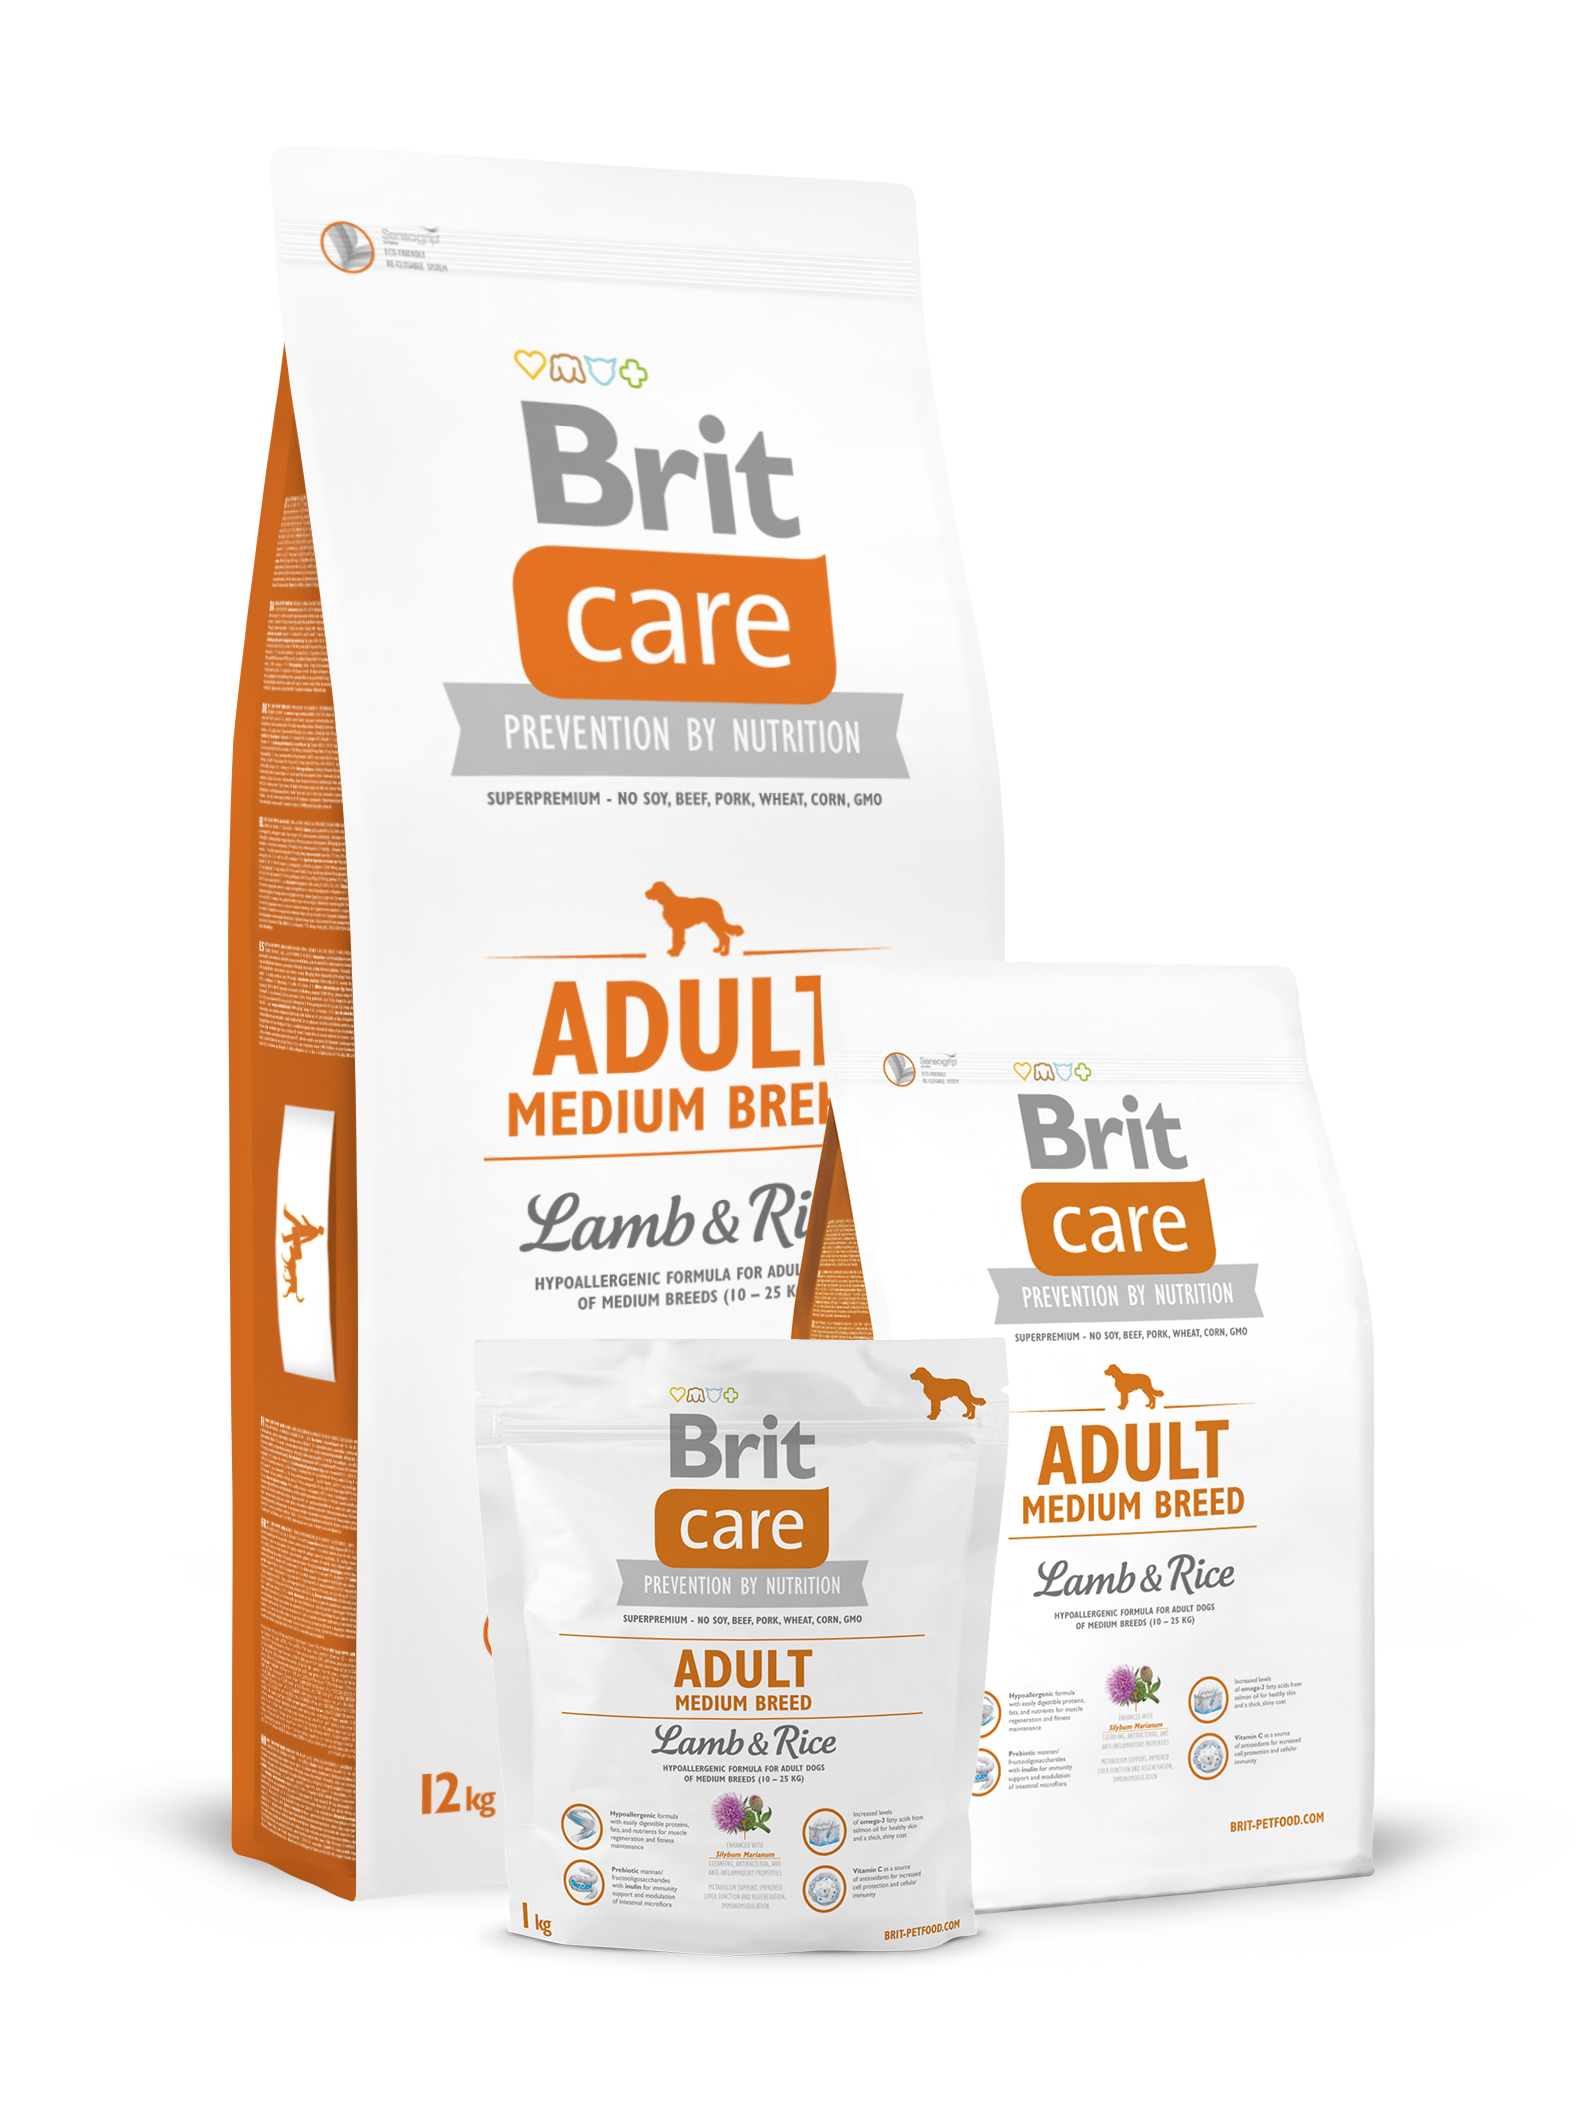 Brit Care Adult Medium Breed Lamb & Rice 12 kg.